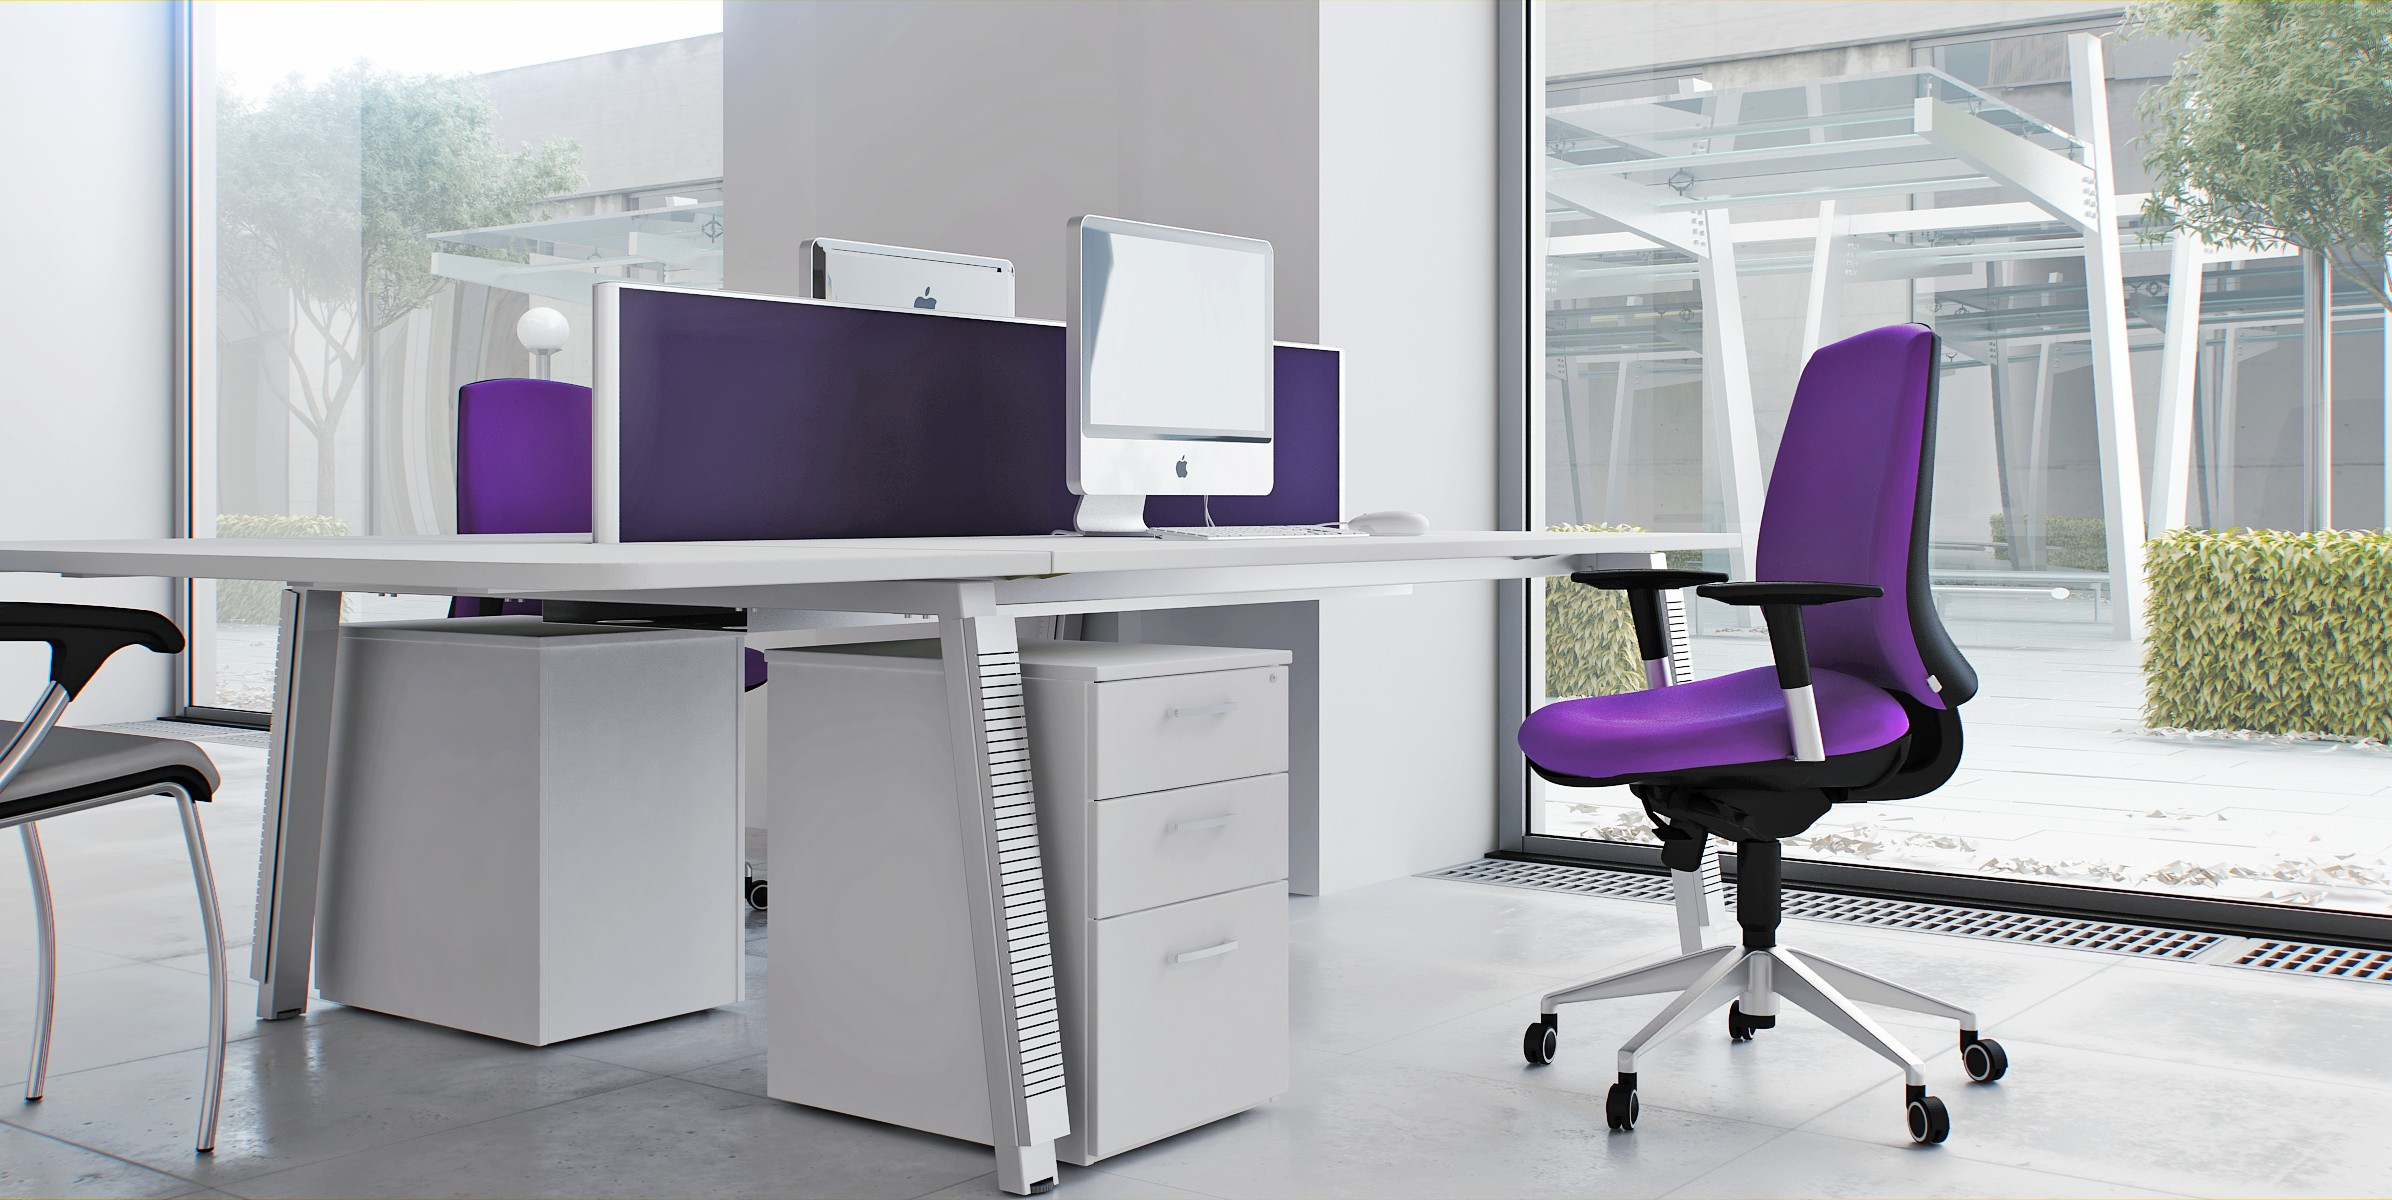 Modern office trends power colours to empower employees for Office design trends articles